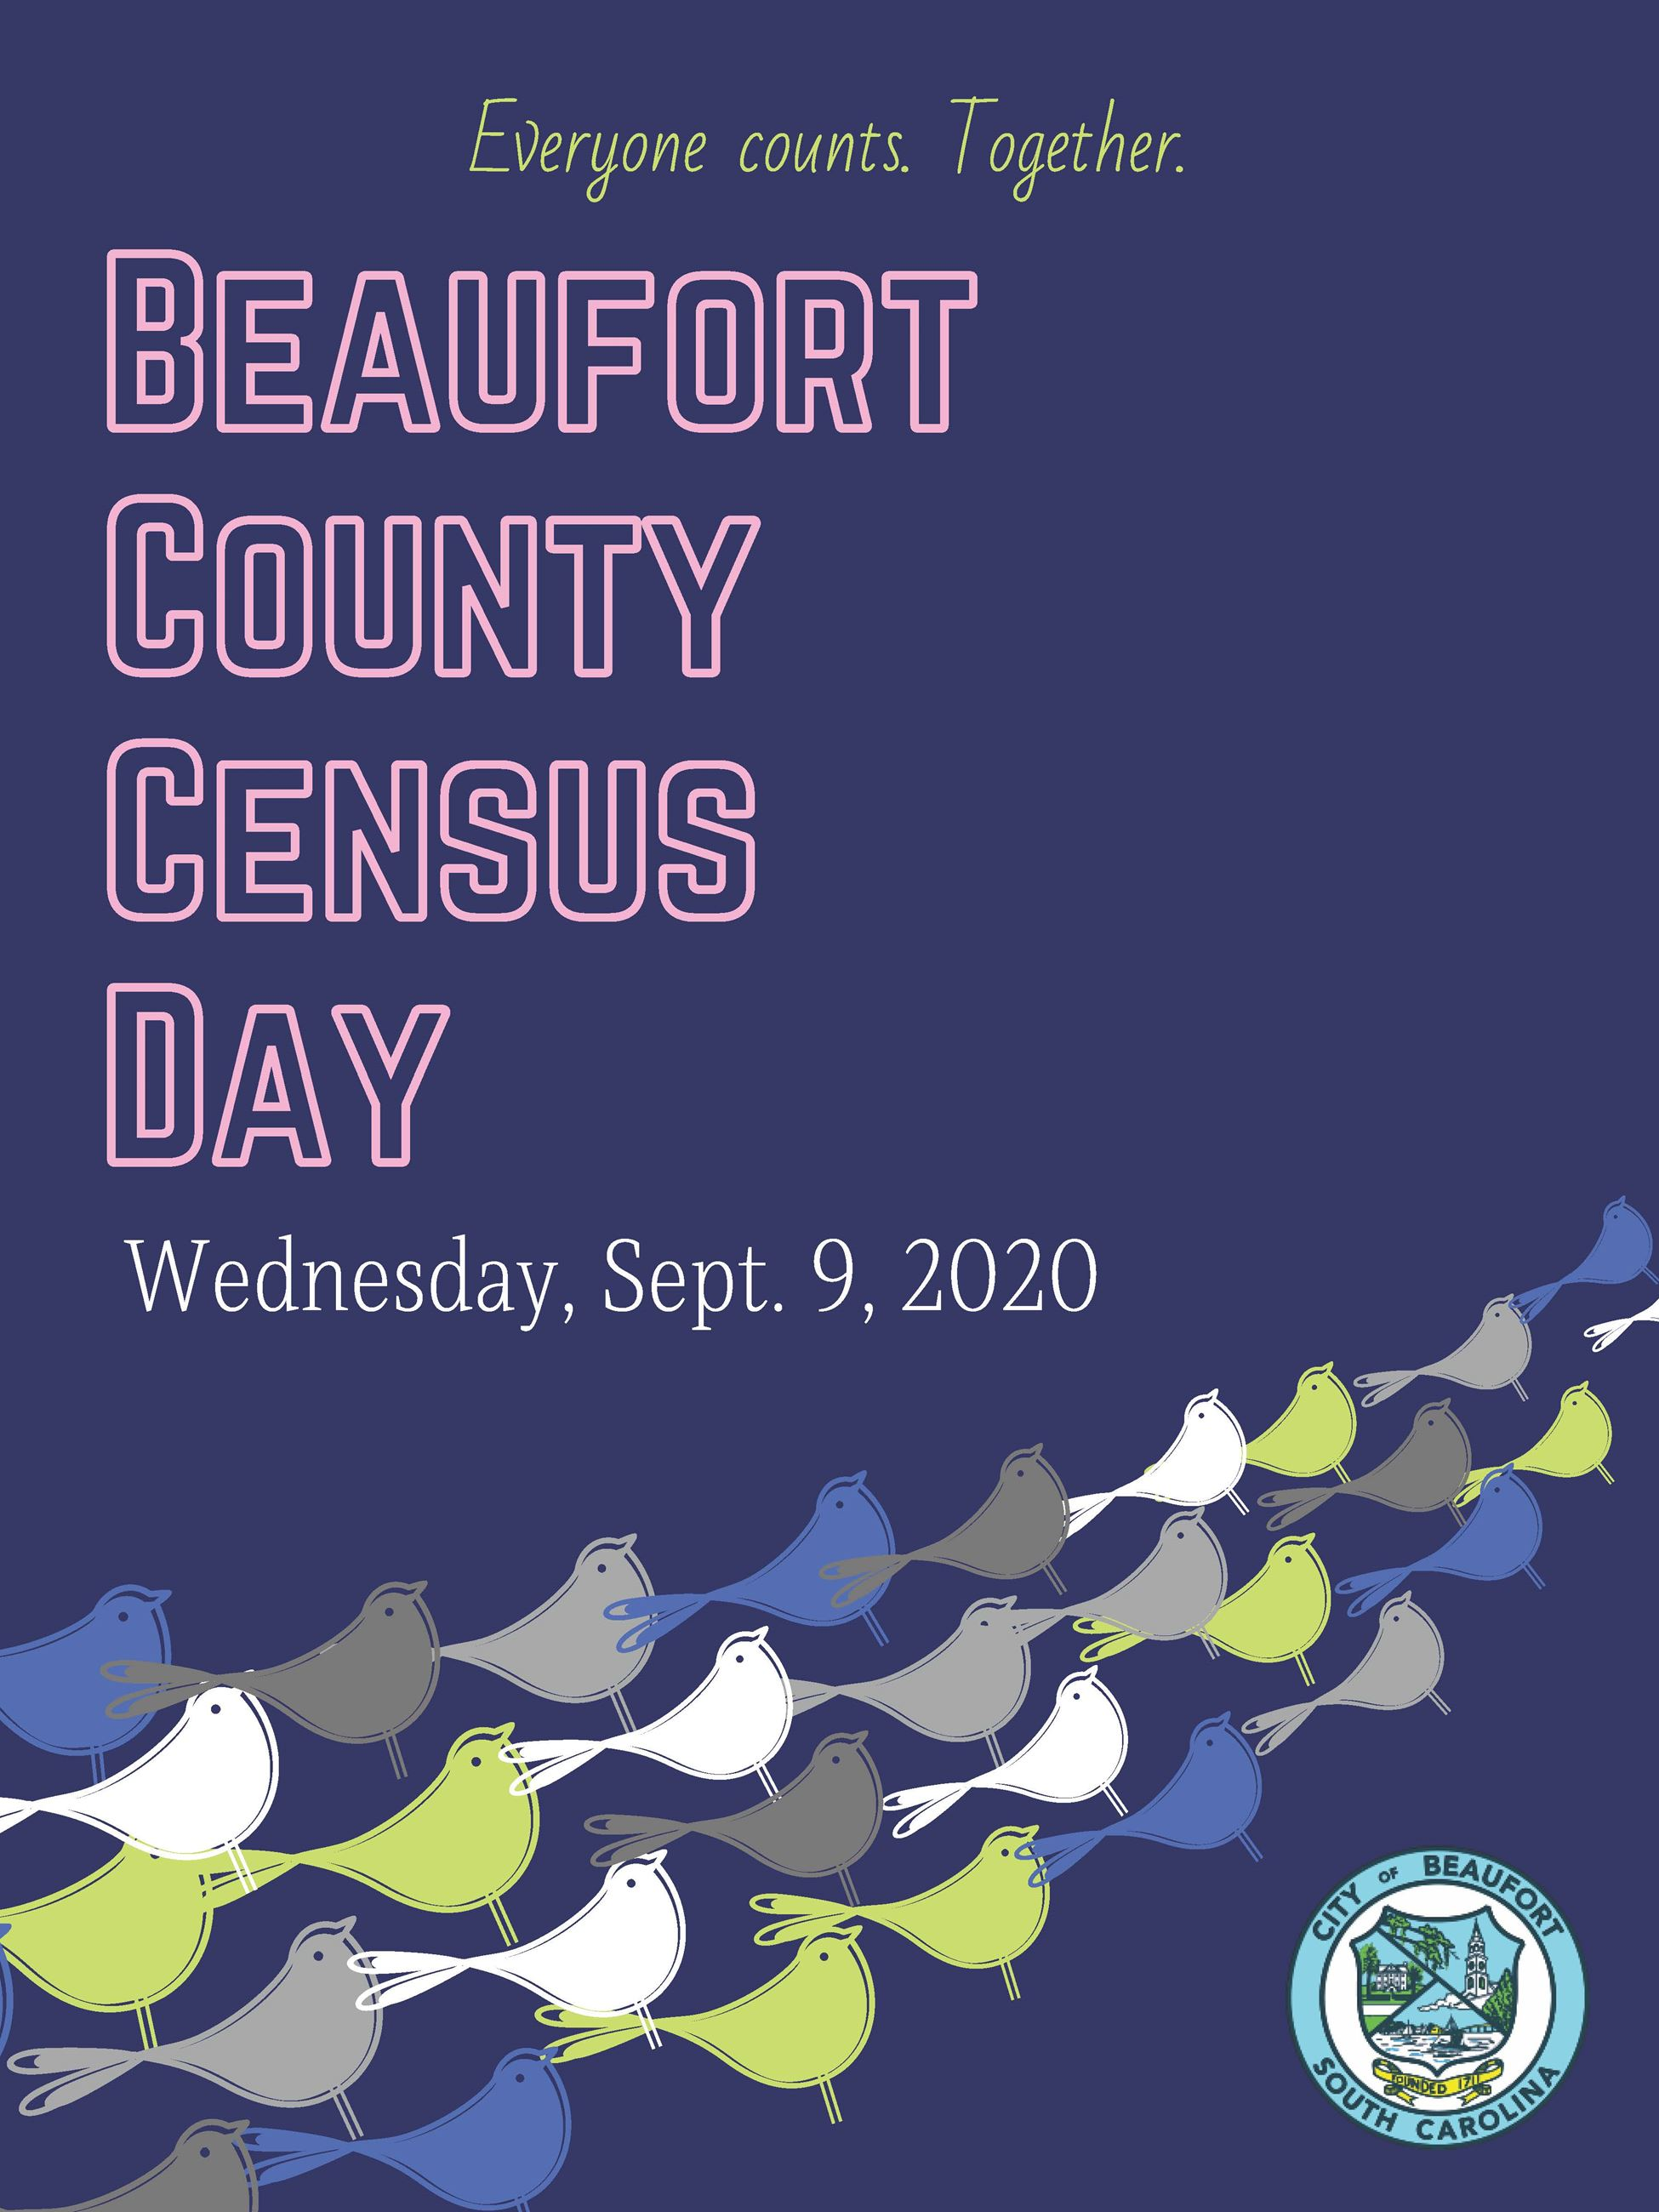 Beaufort-County-Census-Day-Poster-City-of-Beaufort